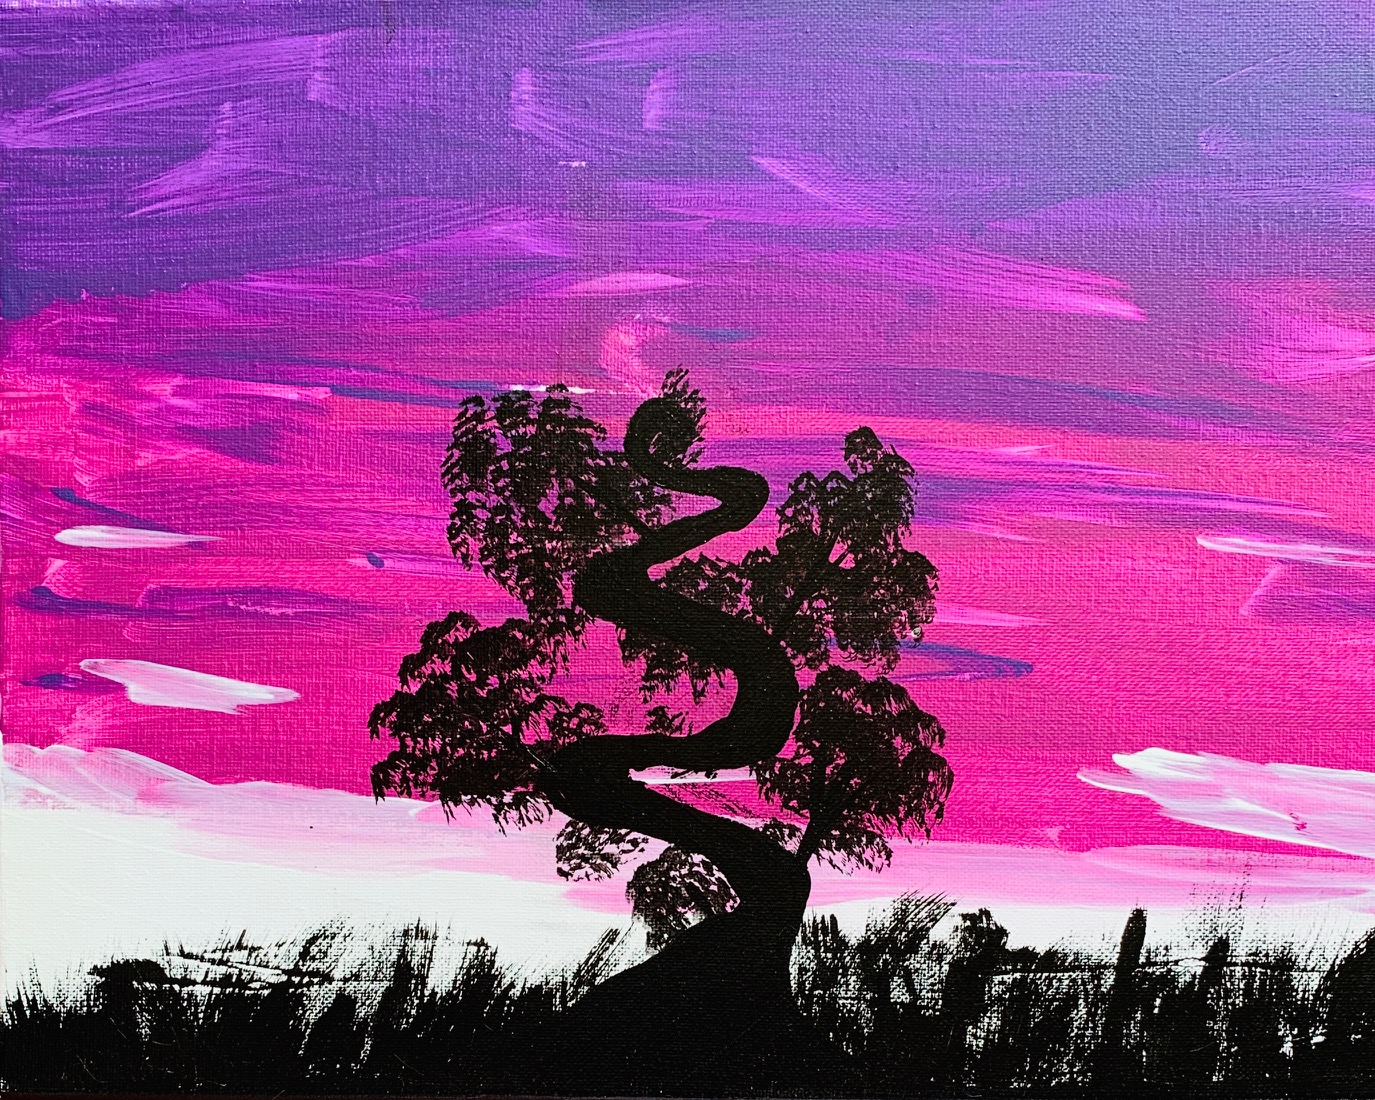 Sunset Tree by Kaelee Irwin